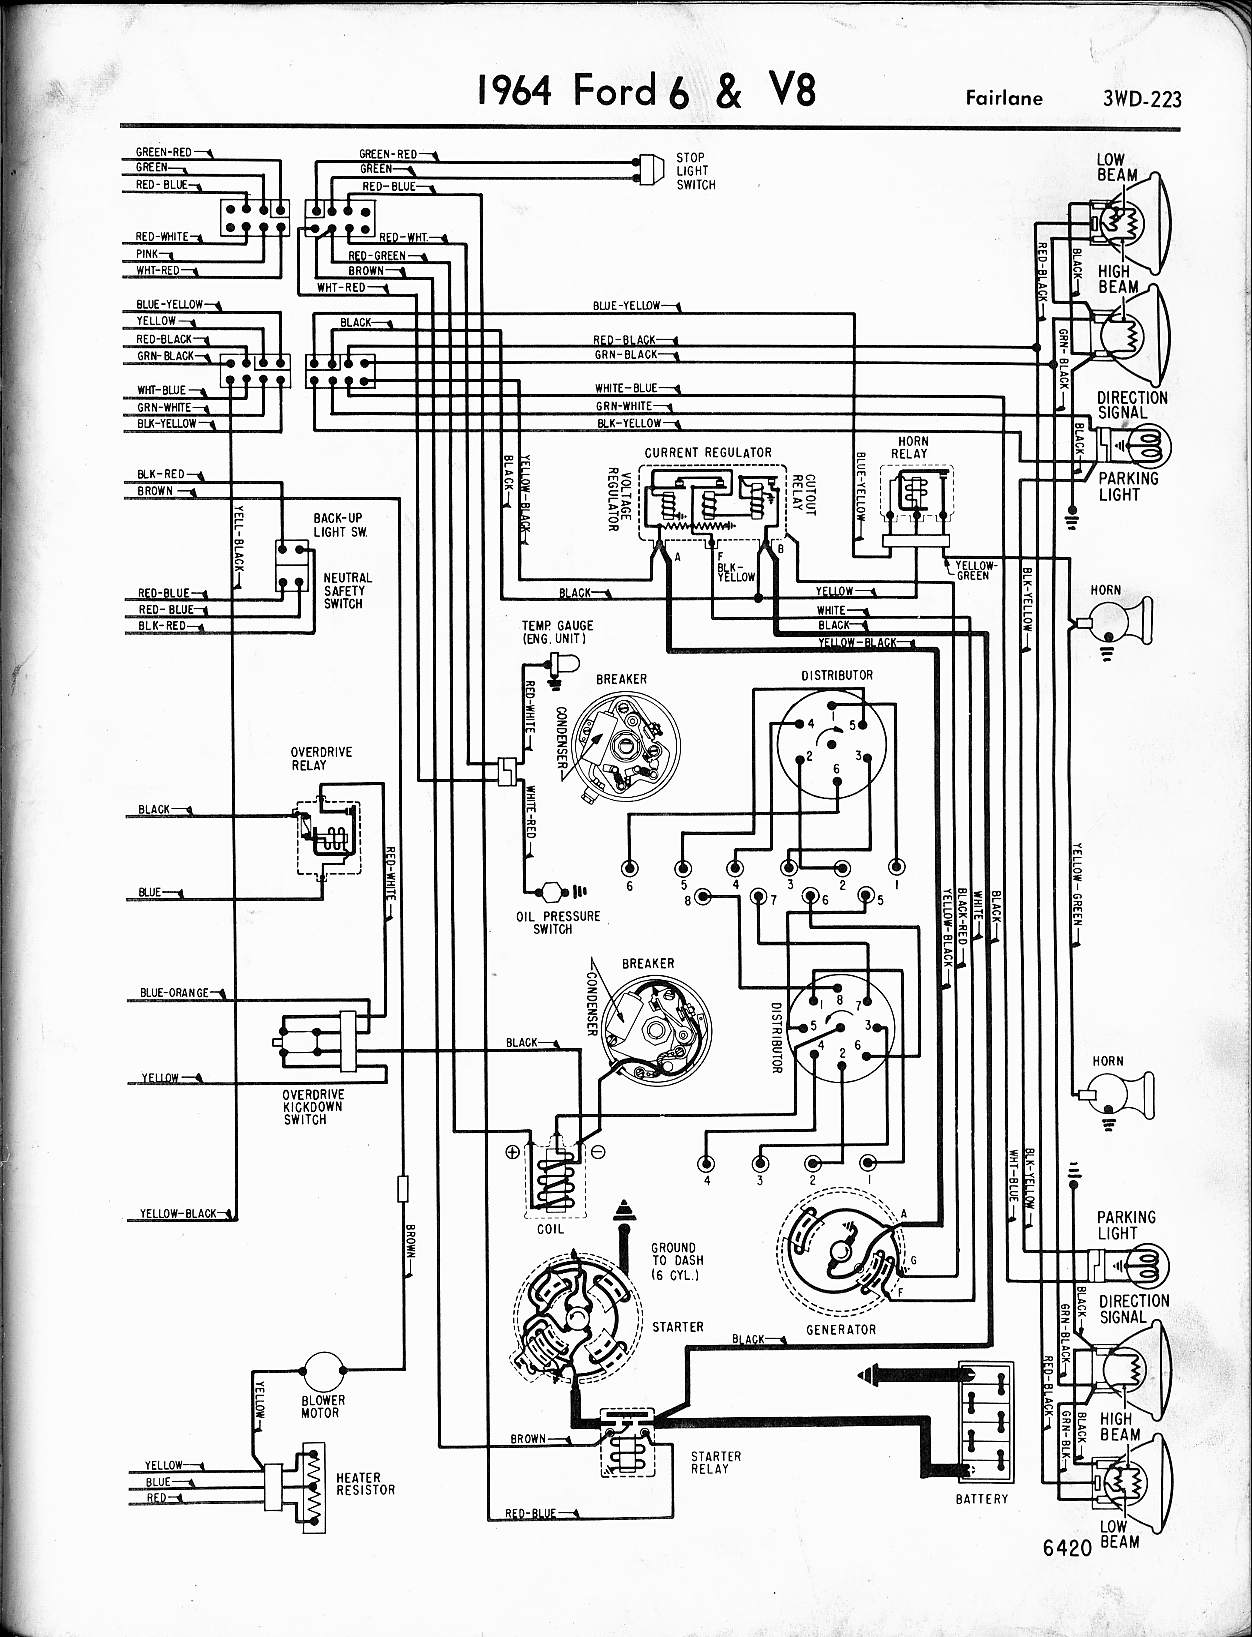 MWire5765 223?resize=665%2C869 ford truck wiring schematics ford truck wiring diagrams flathead,Wiring Schematic For 1963 Ford F 100